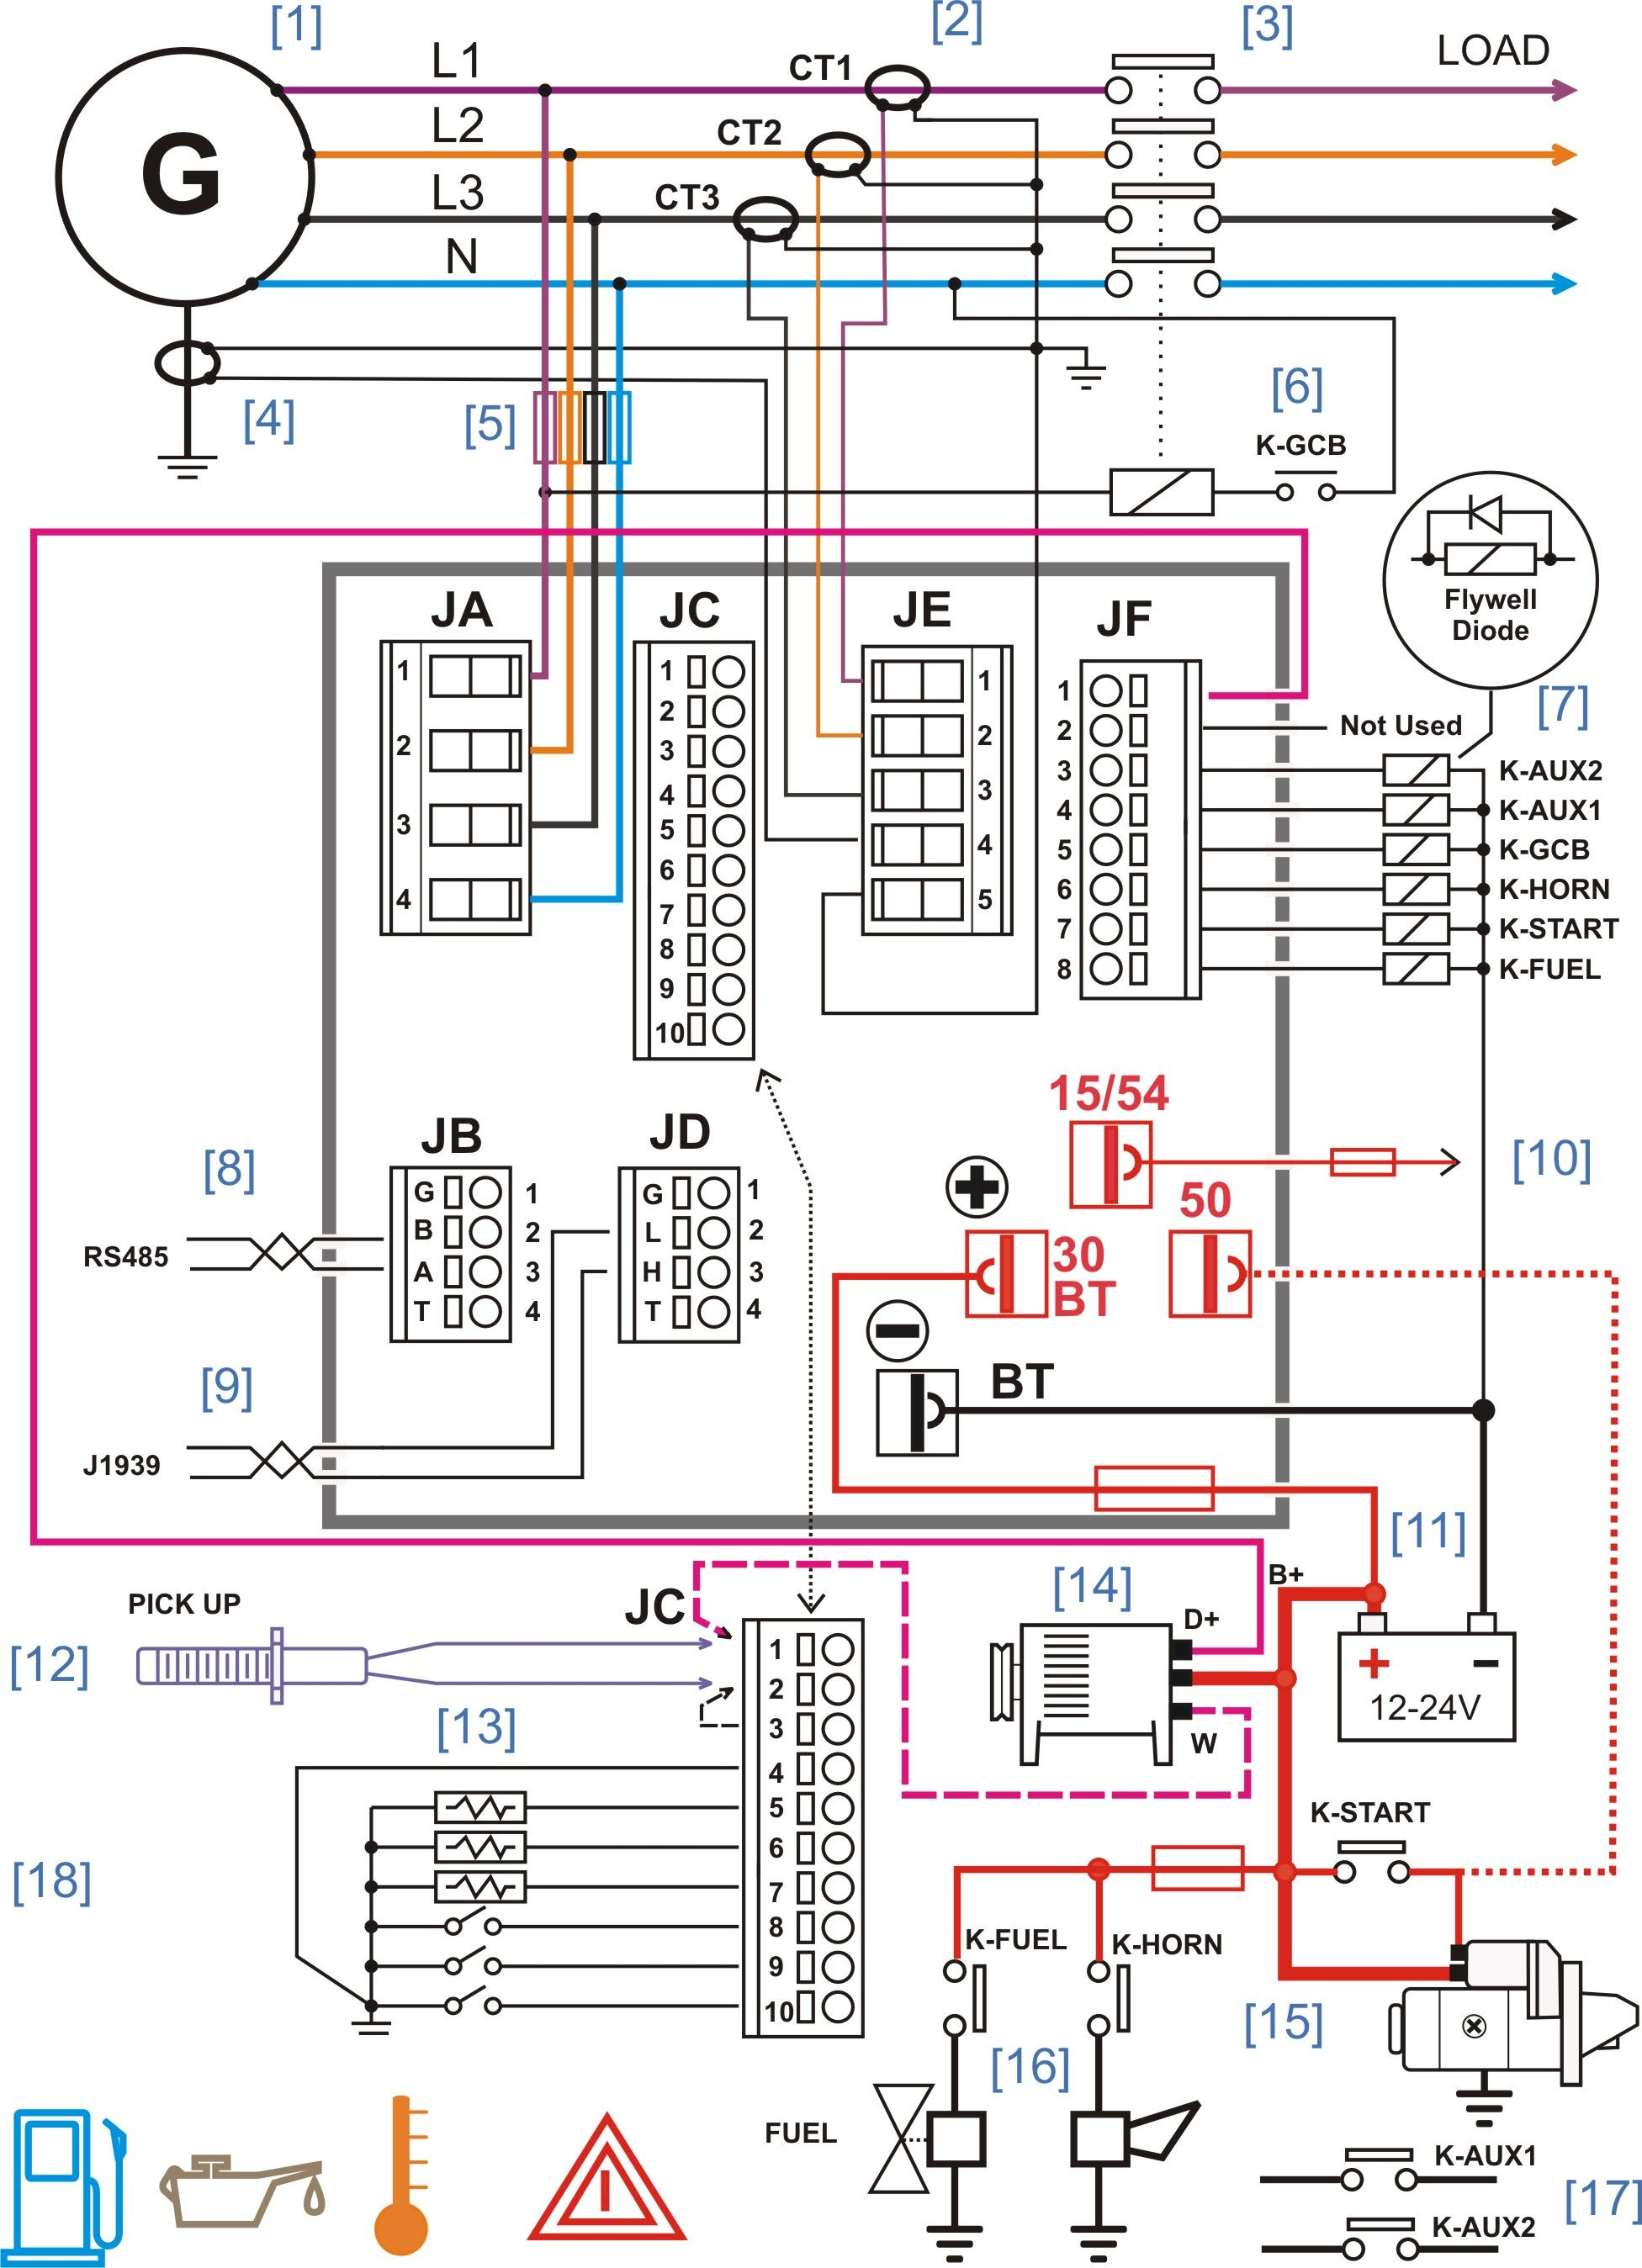 diesel generator control panel wiring diagram diesel generators in ups panel wiring diagram plc panel wiring [ 1952 x 2697 Pixel ]